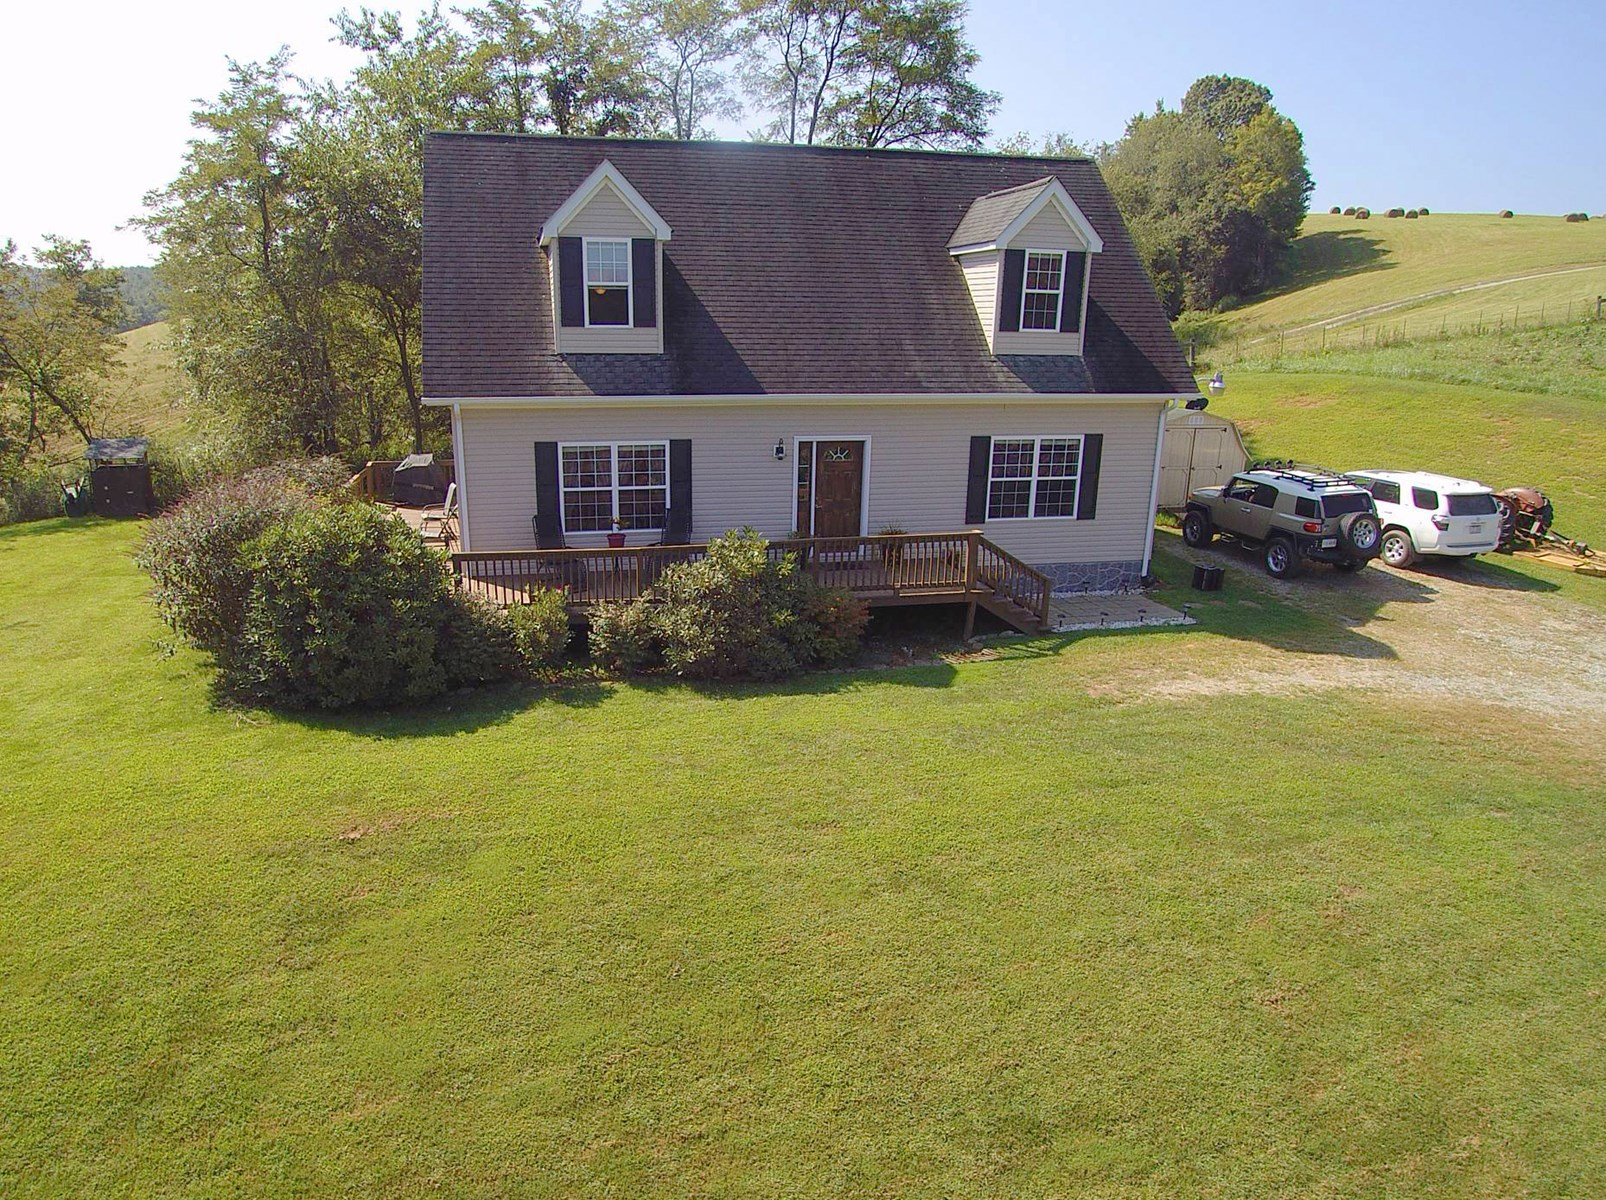 Home and Small Acreage Suitable for Horses in the Blue Ridge